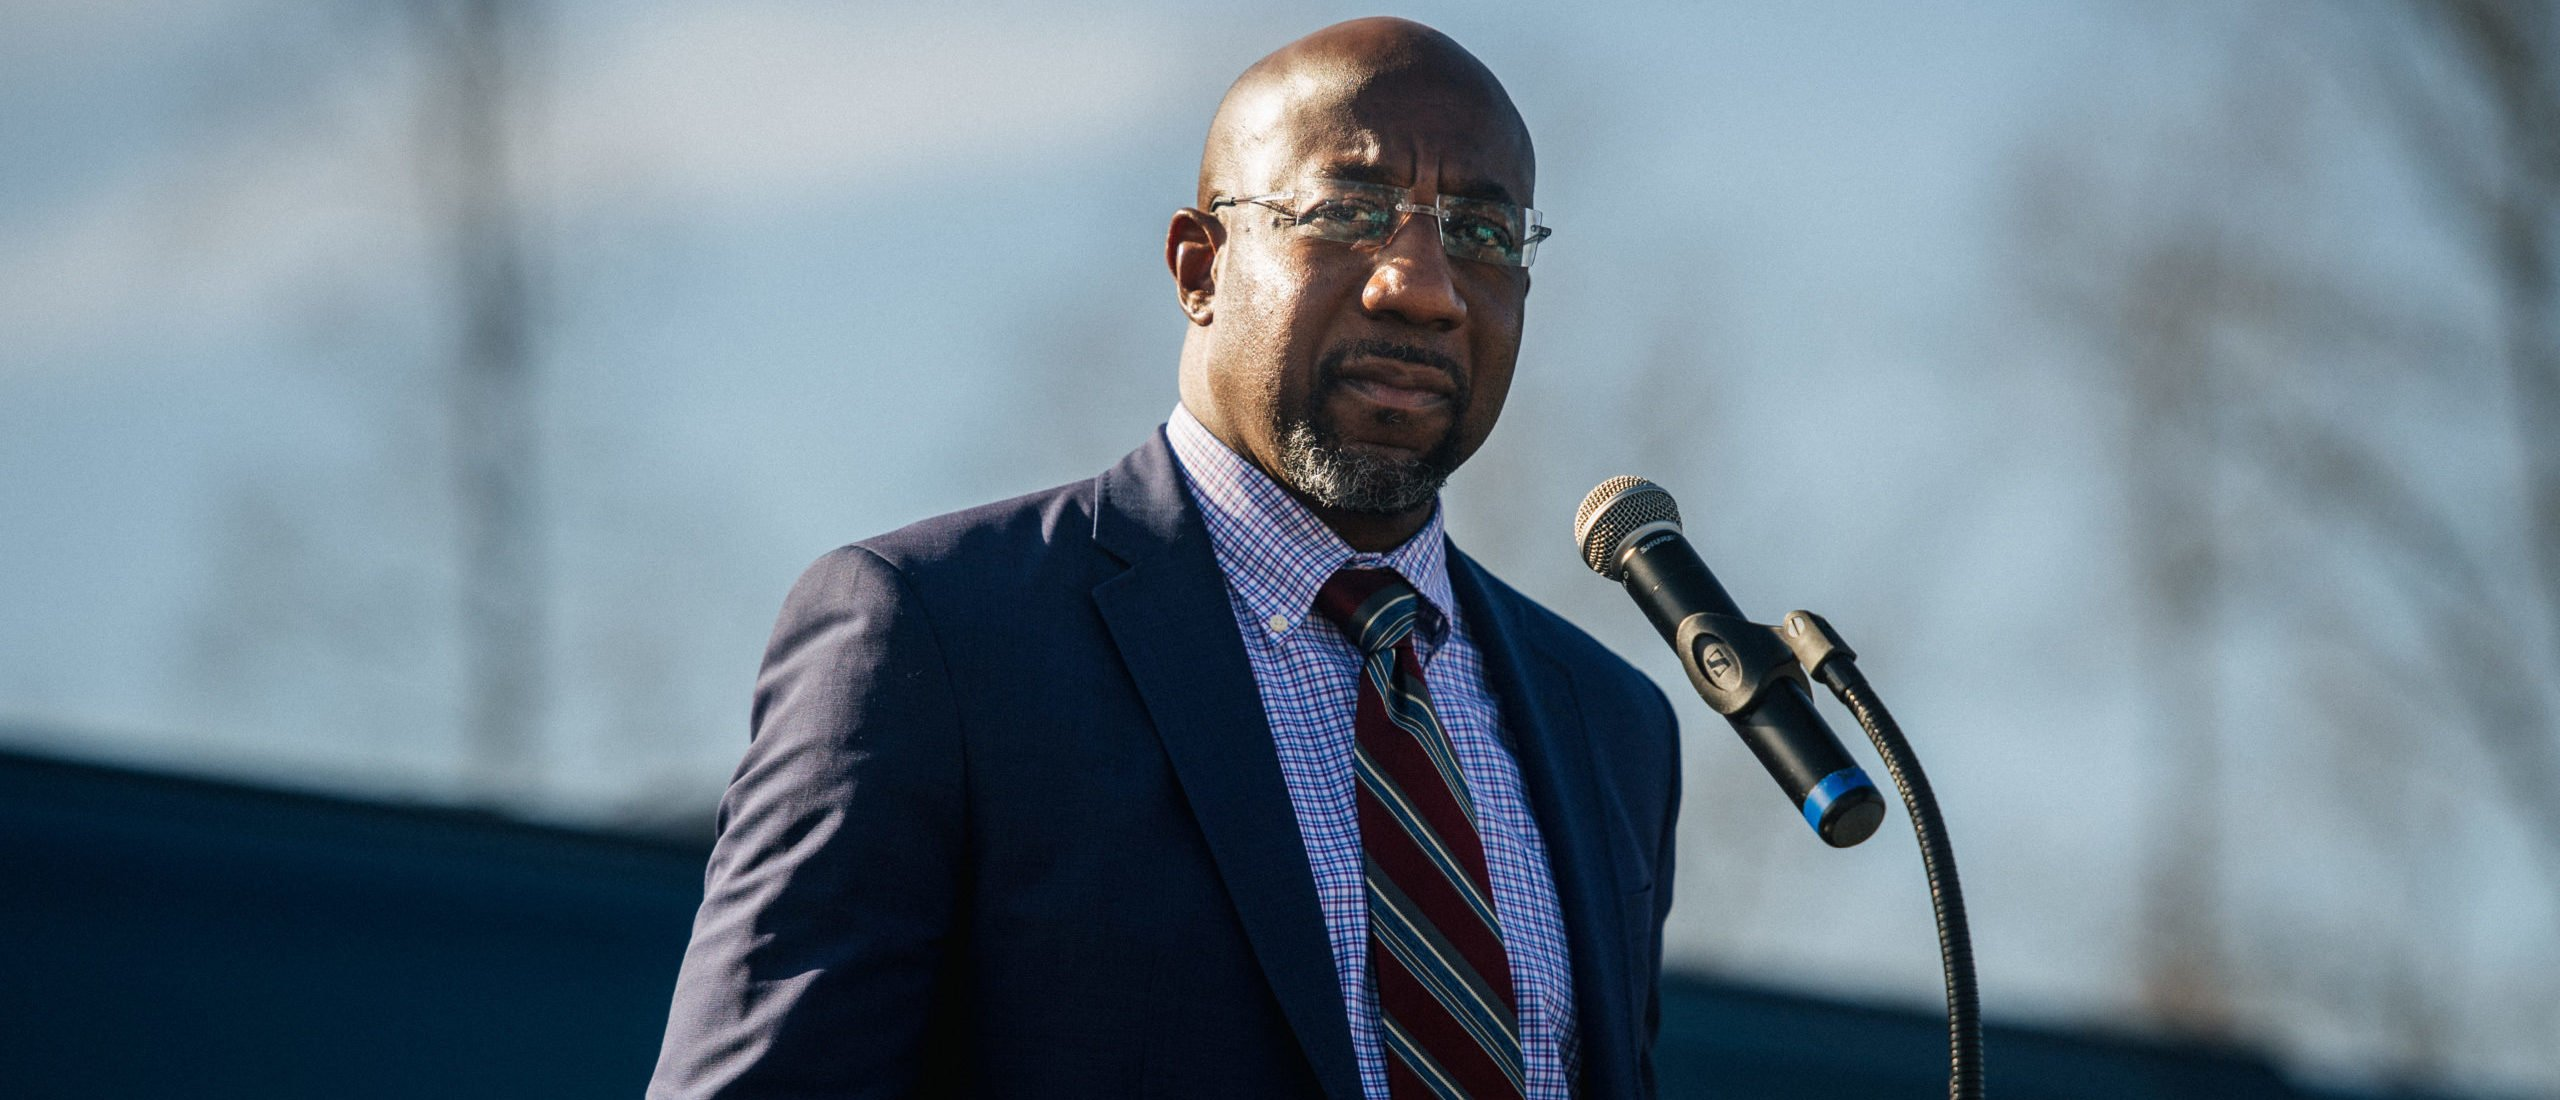 RIVERDALE, GA - JANUARY 04: Georgia Democratic Senate candidate Rev. Raphael Warnock speaks at a drive-in rally on January 4, 2021 in Riverdale, Georgia. In the lead-up to the January 5 runoff election, Democratic Senate candidate Rev. Raphael Warnock continues to focus on voting efforts across the state of Georgia. (Photo by Brandon Bell/Getty Images)